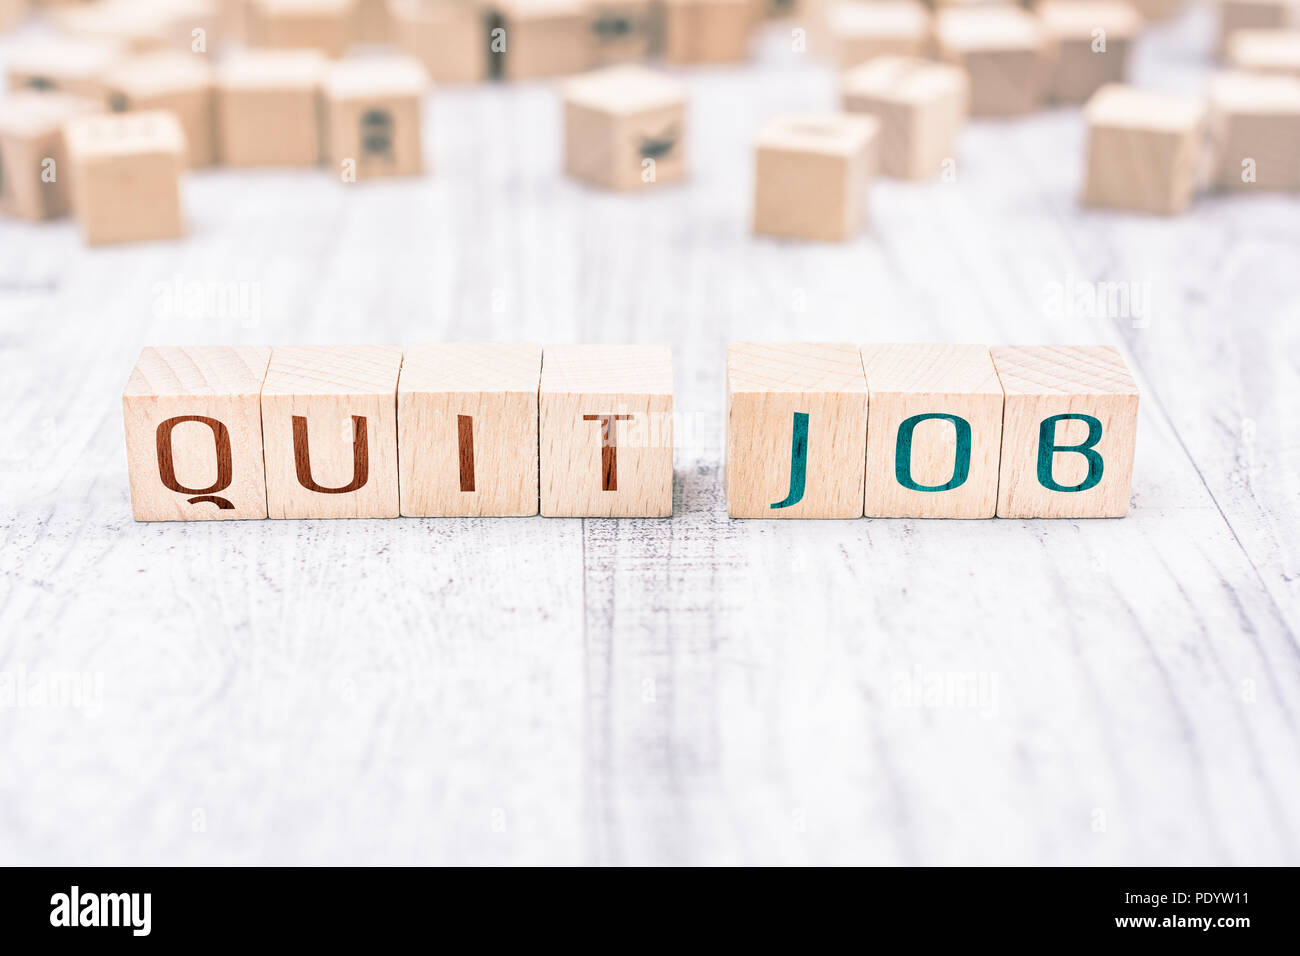 The Words Quit Job Formed By Wooden Blocks On A White Table, Reminder Concept - Stock Image